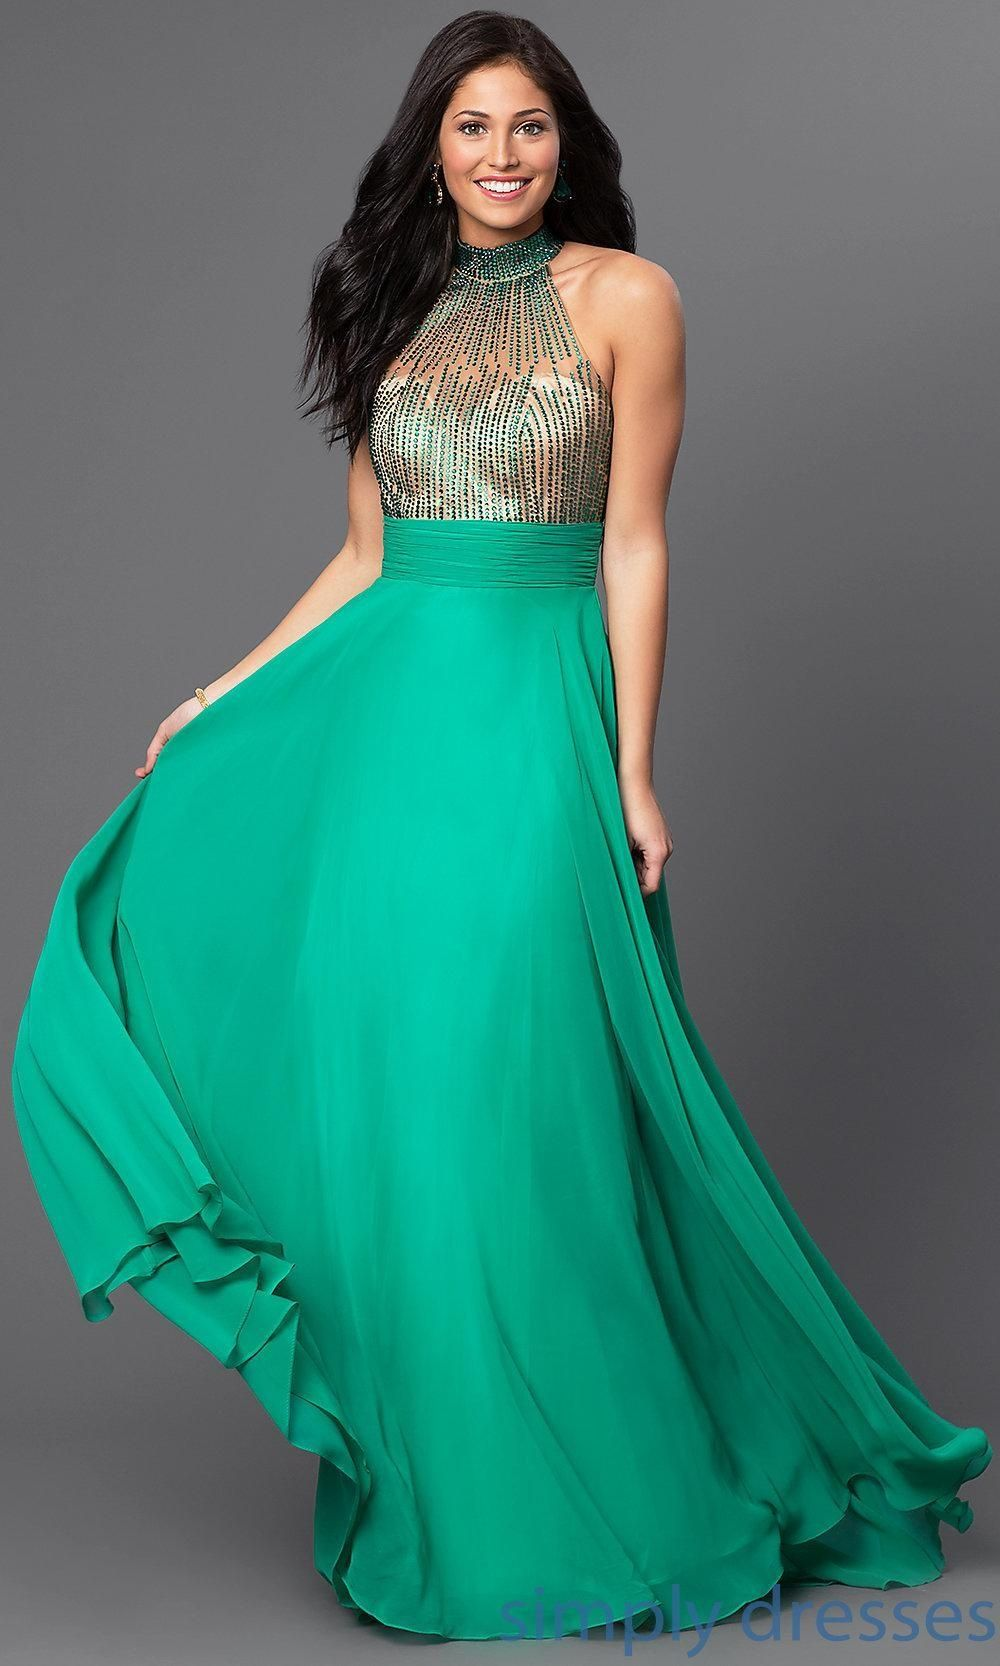 Beaded high neck long green open back sweetheart dress by dave and